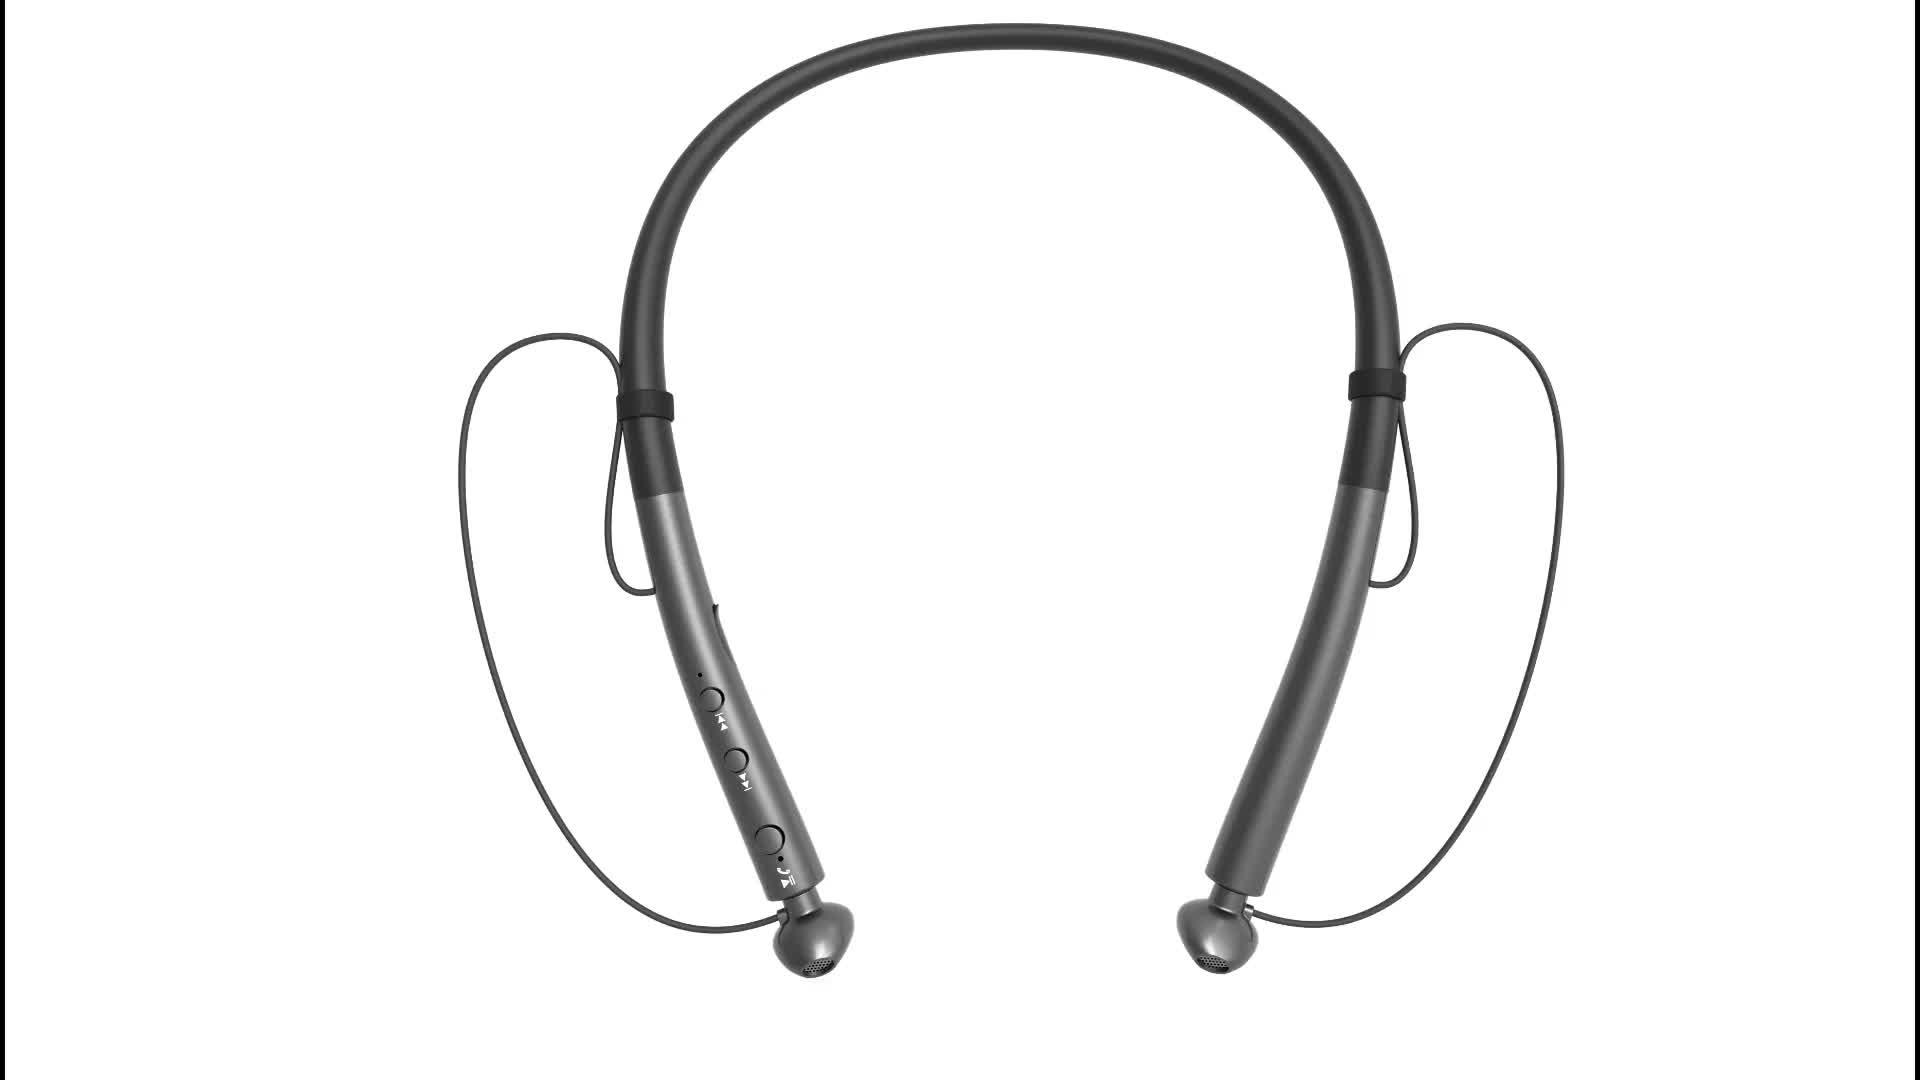 Hbq Q14 Stereo Cordless Earbuds Headphones Headset